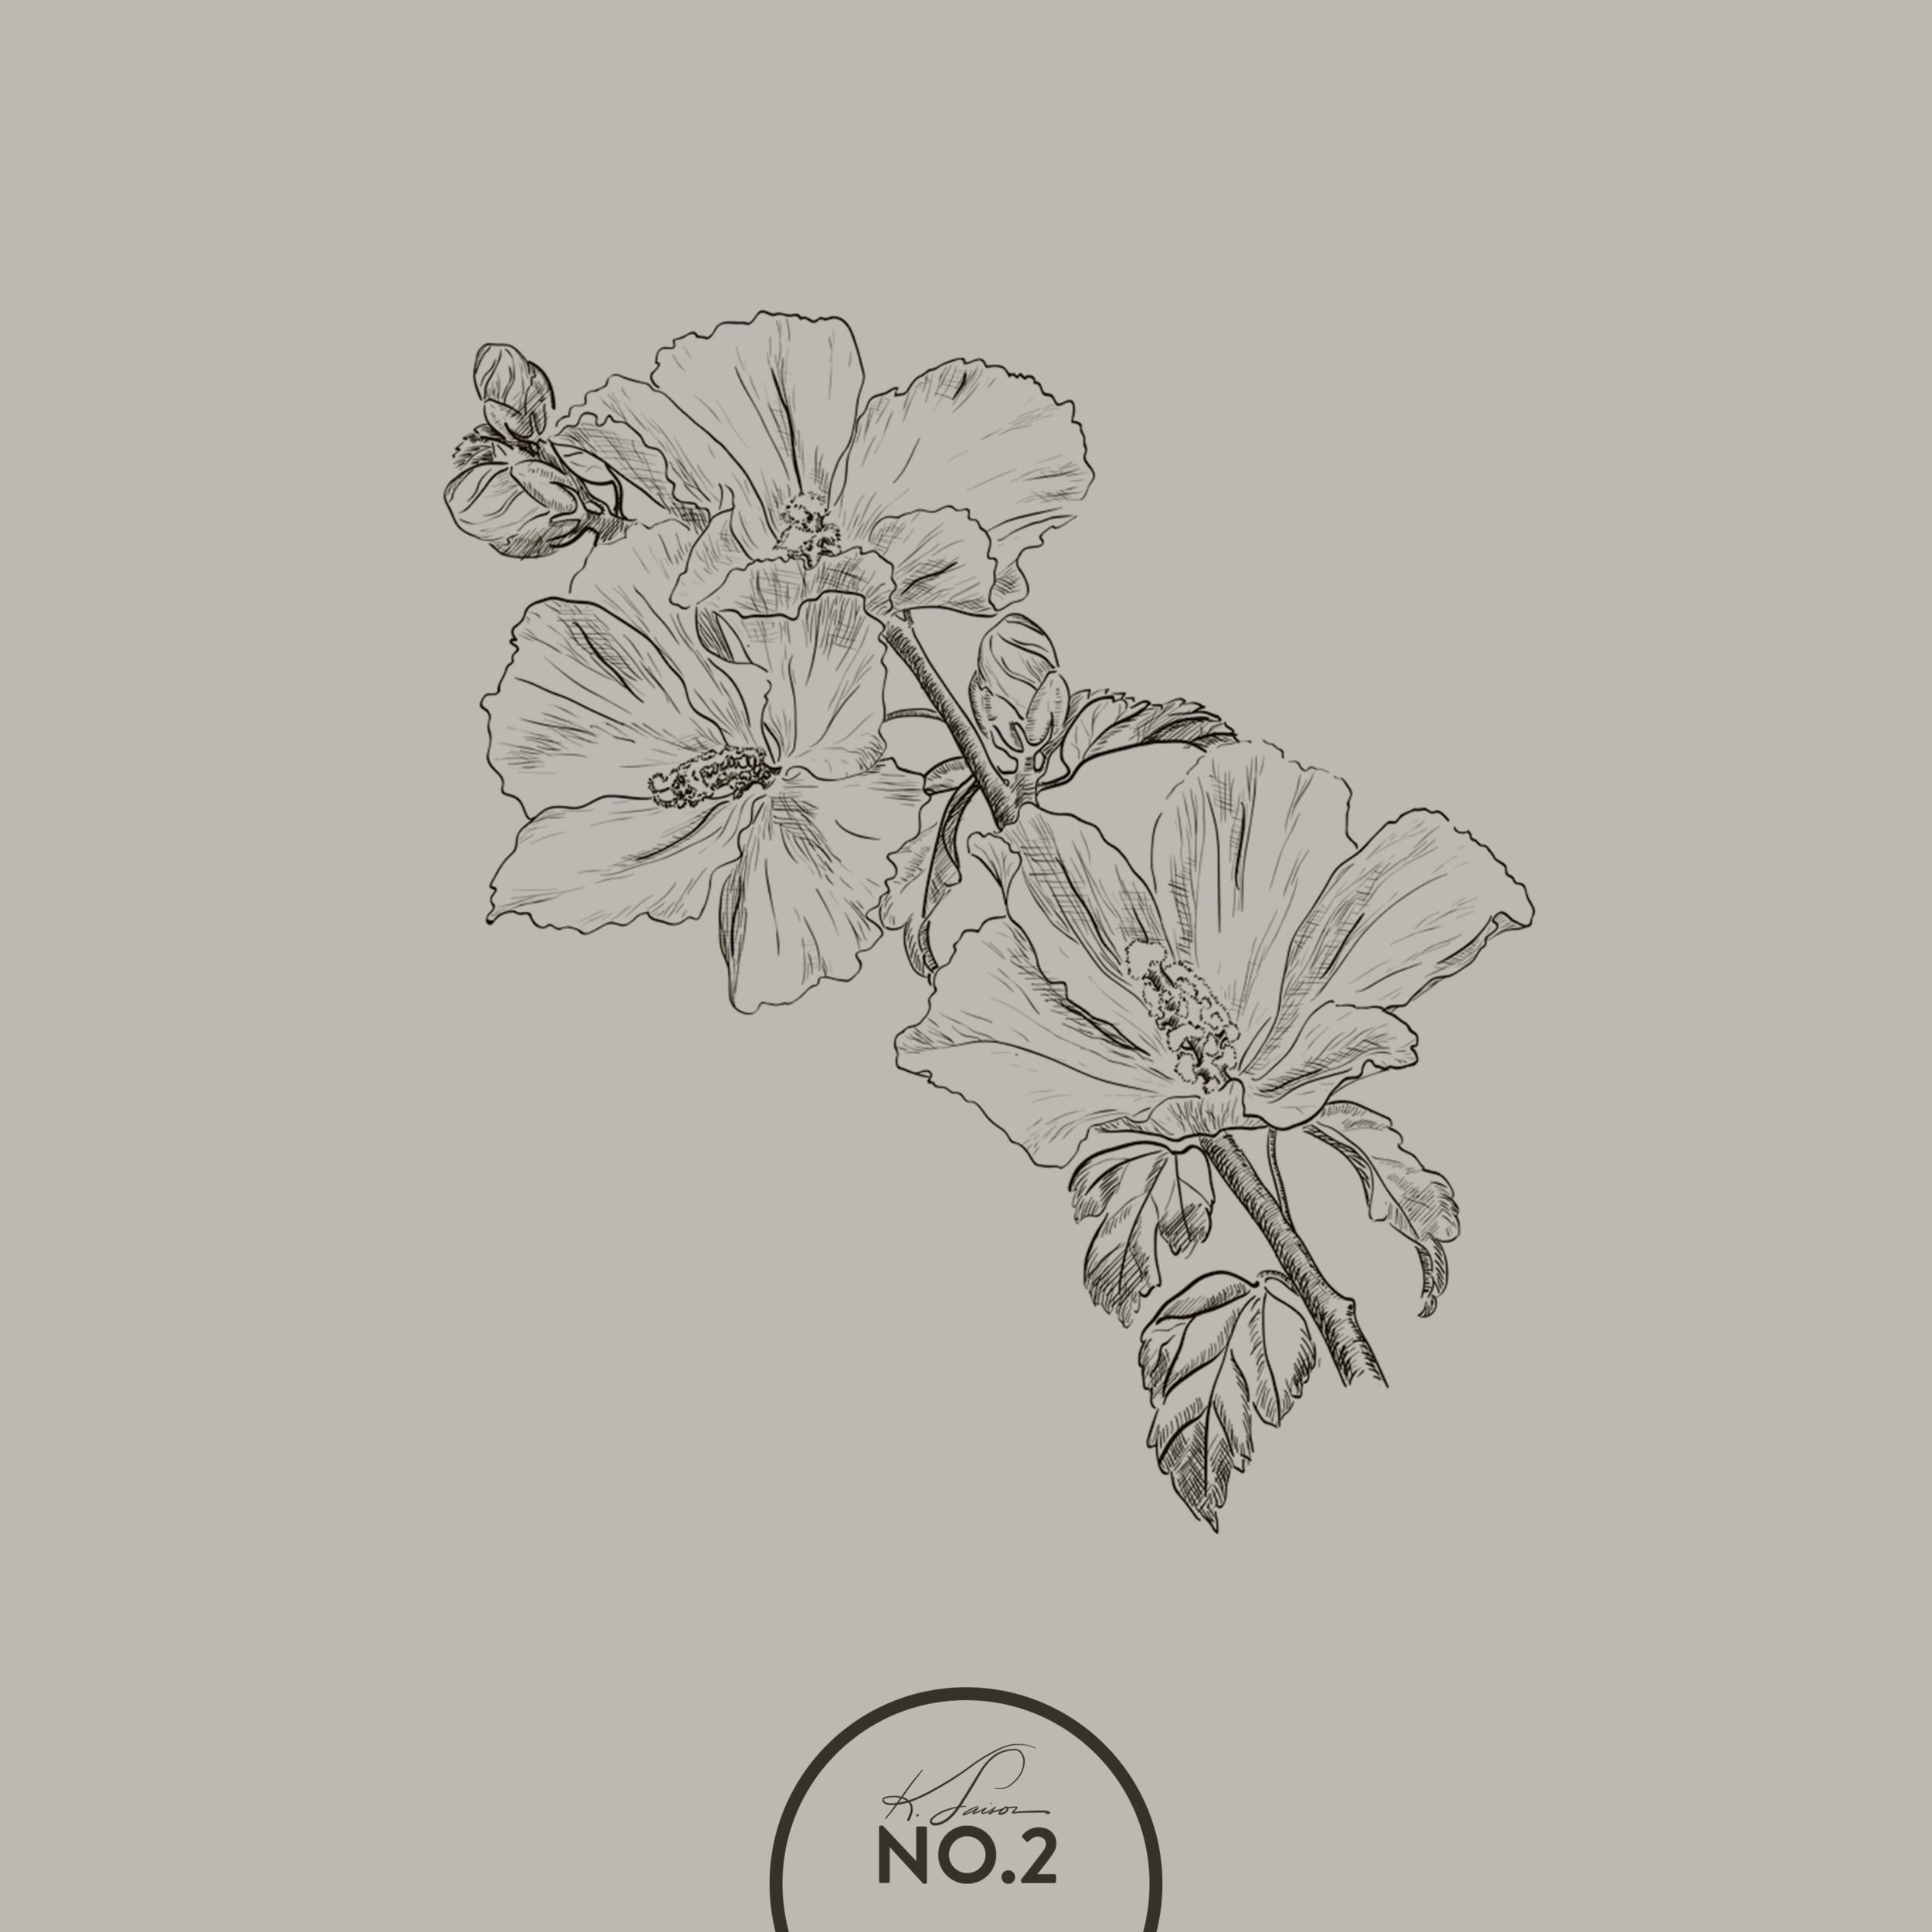 hand-drawn-hibiscus-flower-sketch-vector-8507635.png